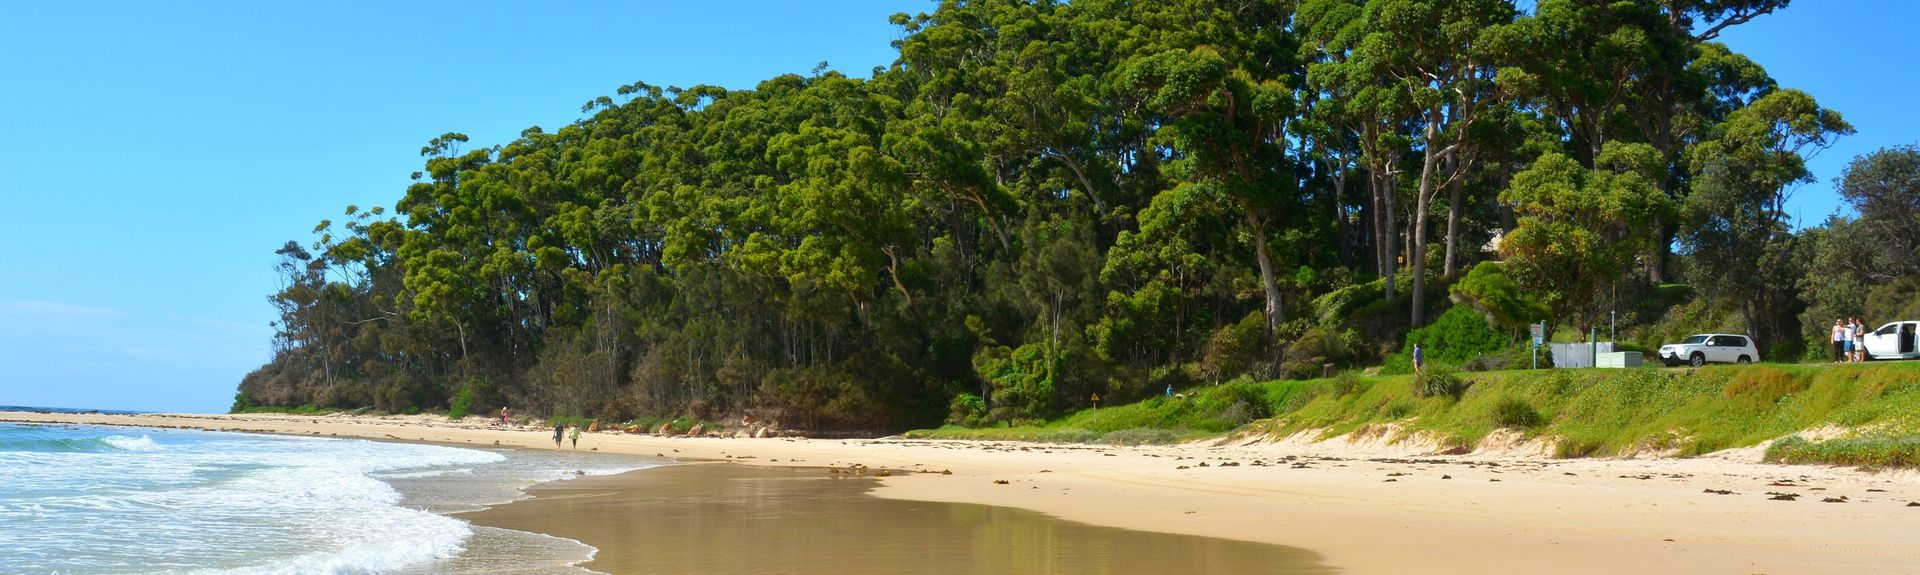 Ulladulla, New South Wales, Australia